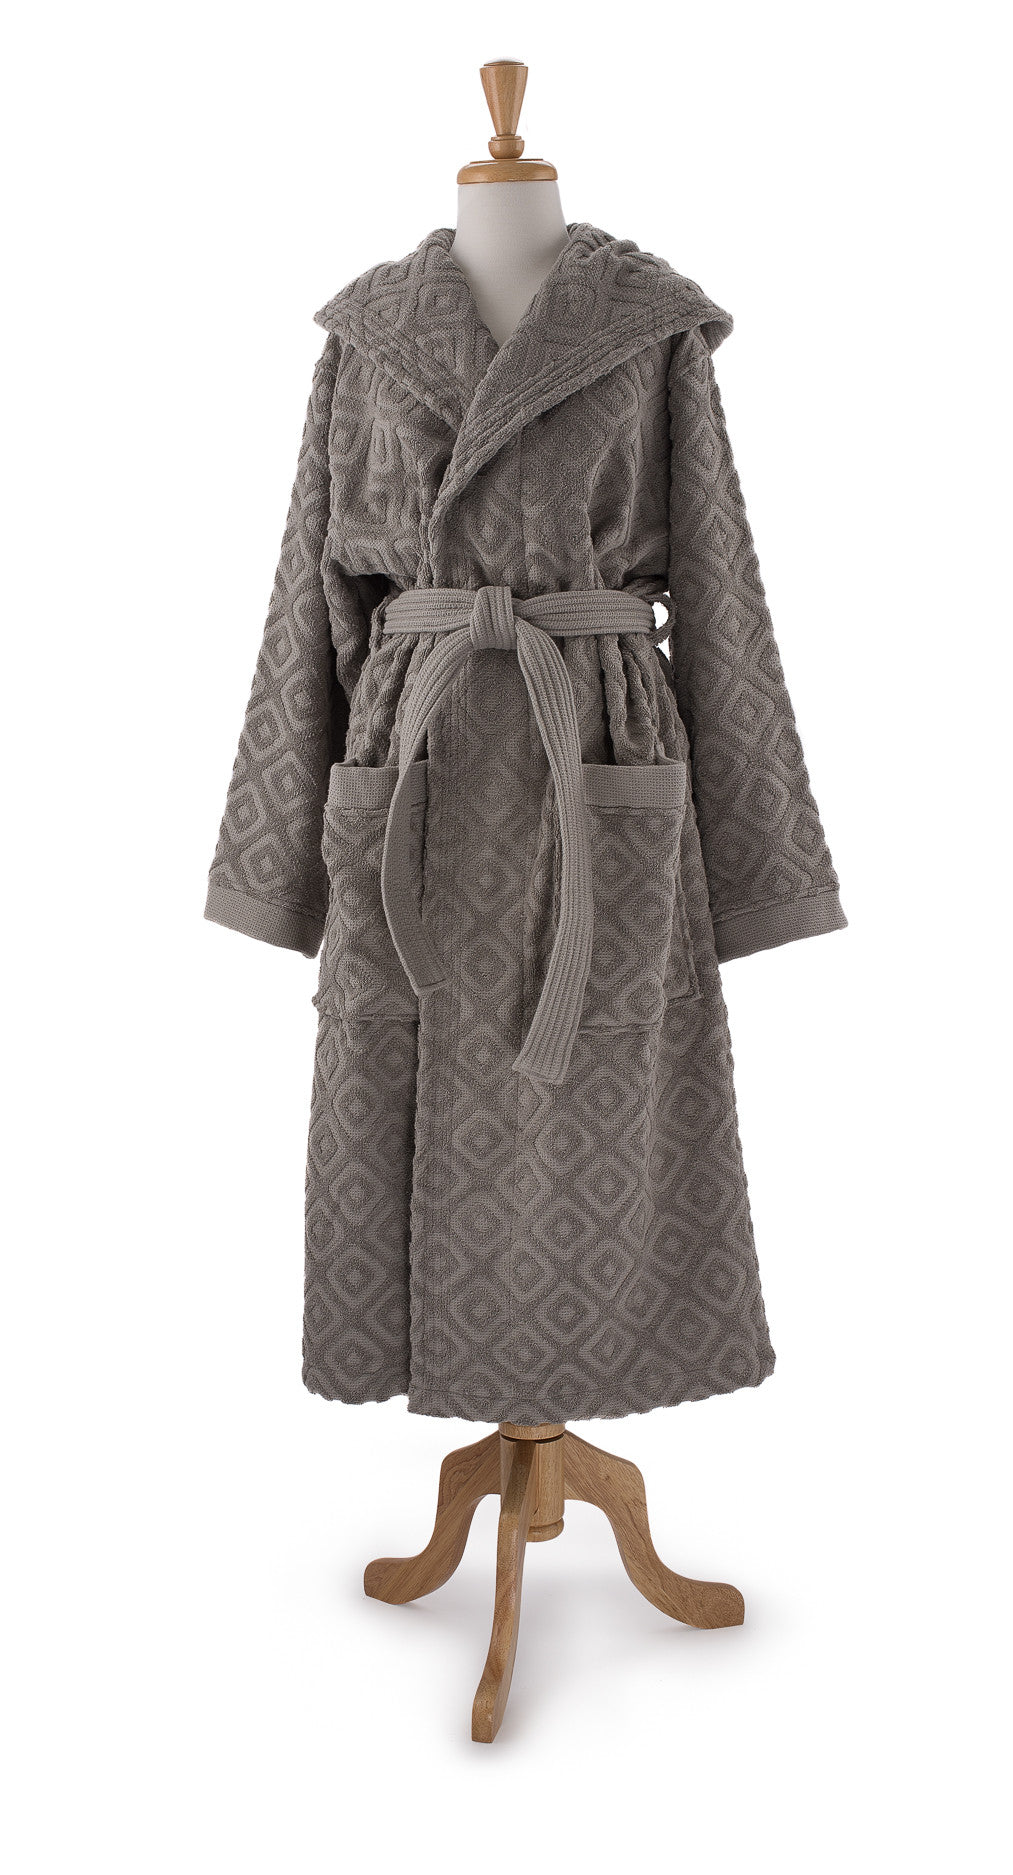 https://cdn.shopify.com/s/files/1/1176/9900/products/ROBE2014GREY-5.jpg?v=1459318413